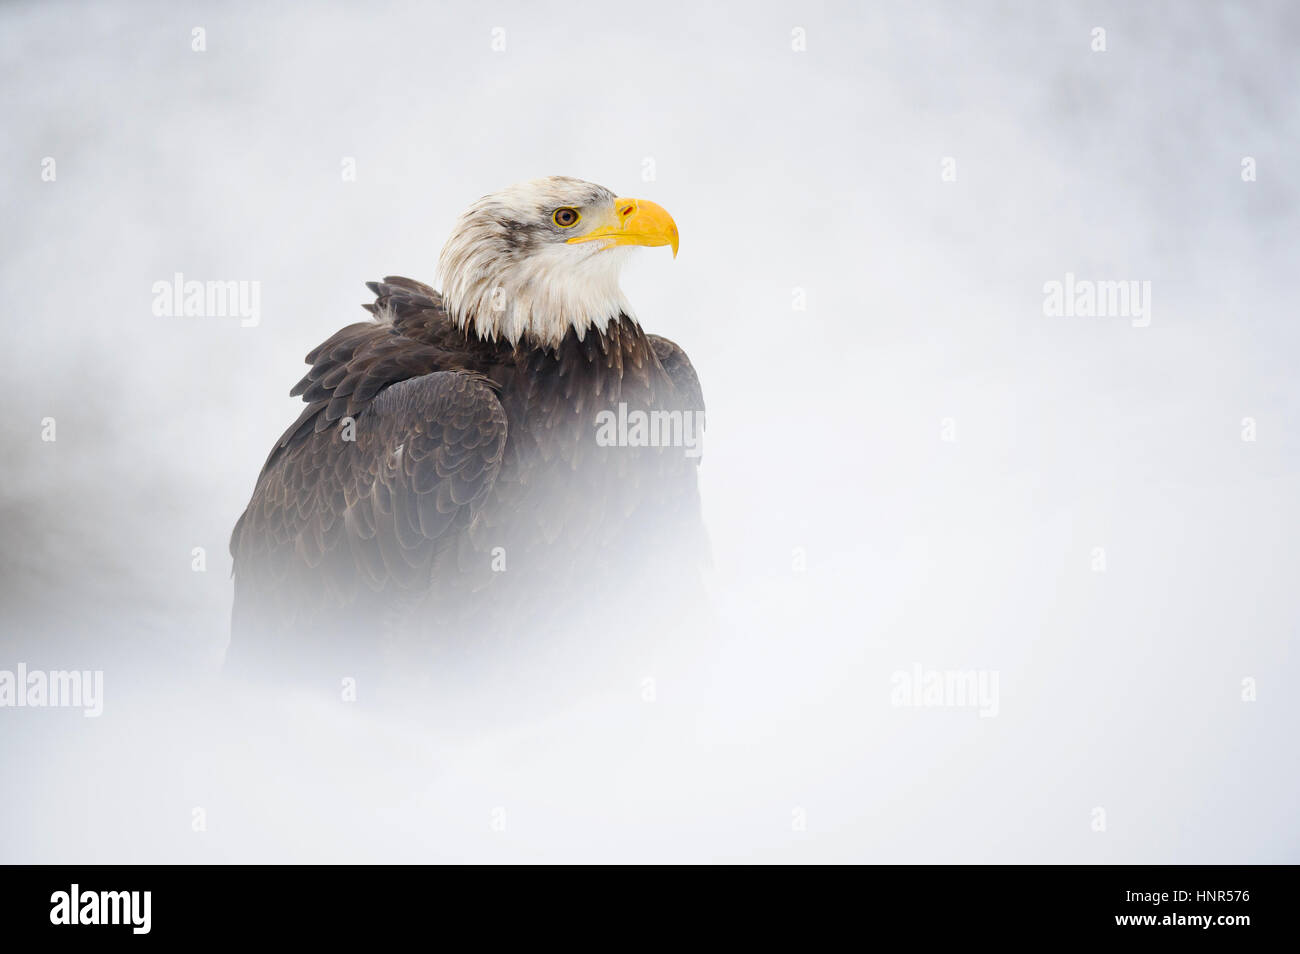 Bald eagle portrait in winter with snow around - Stock Image